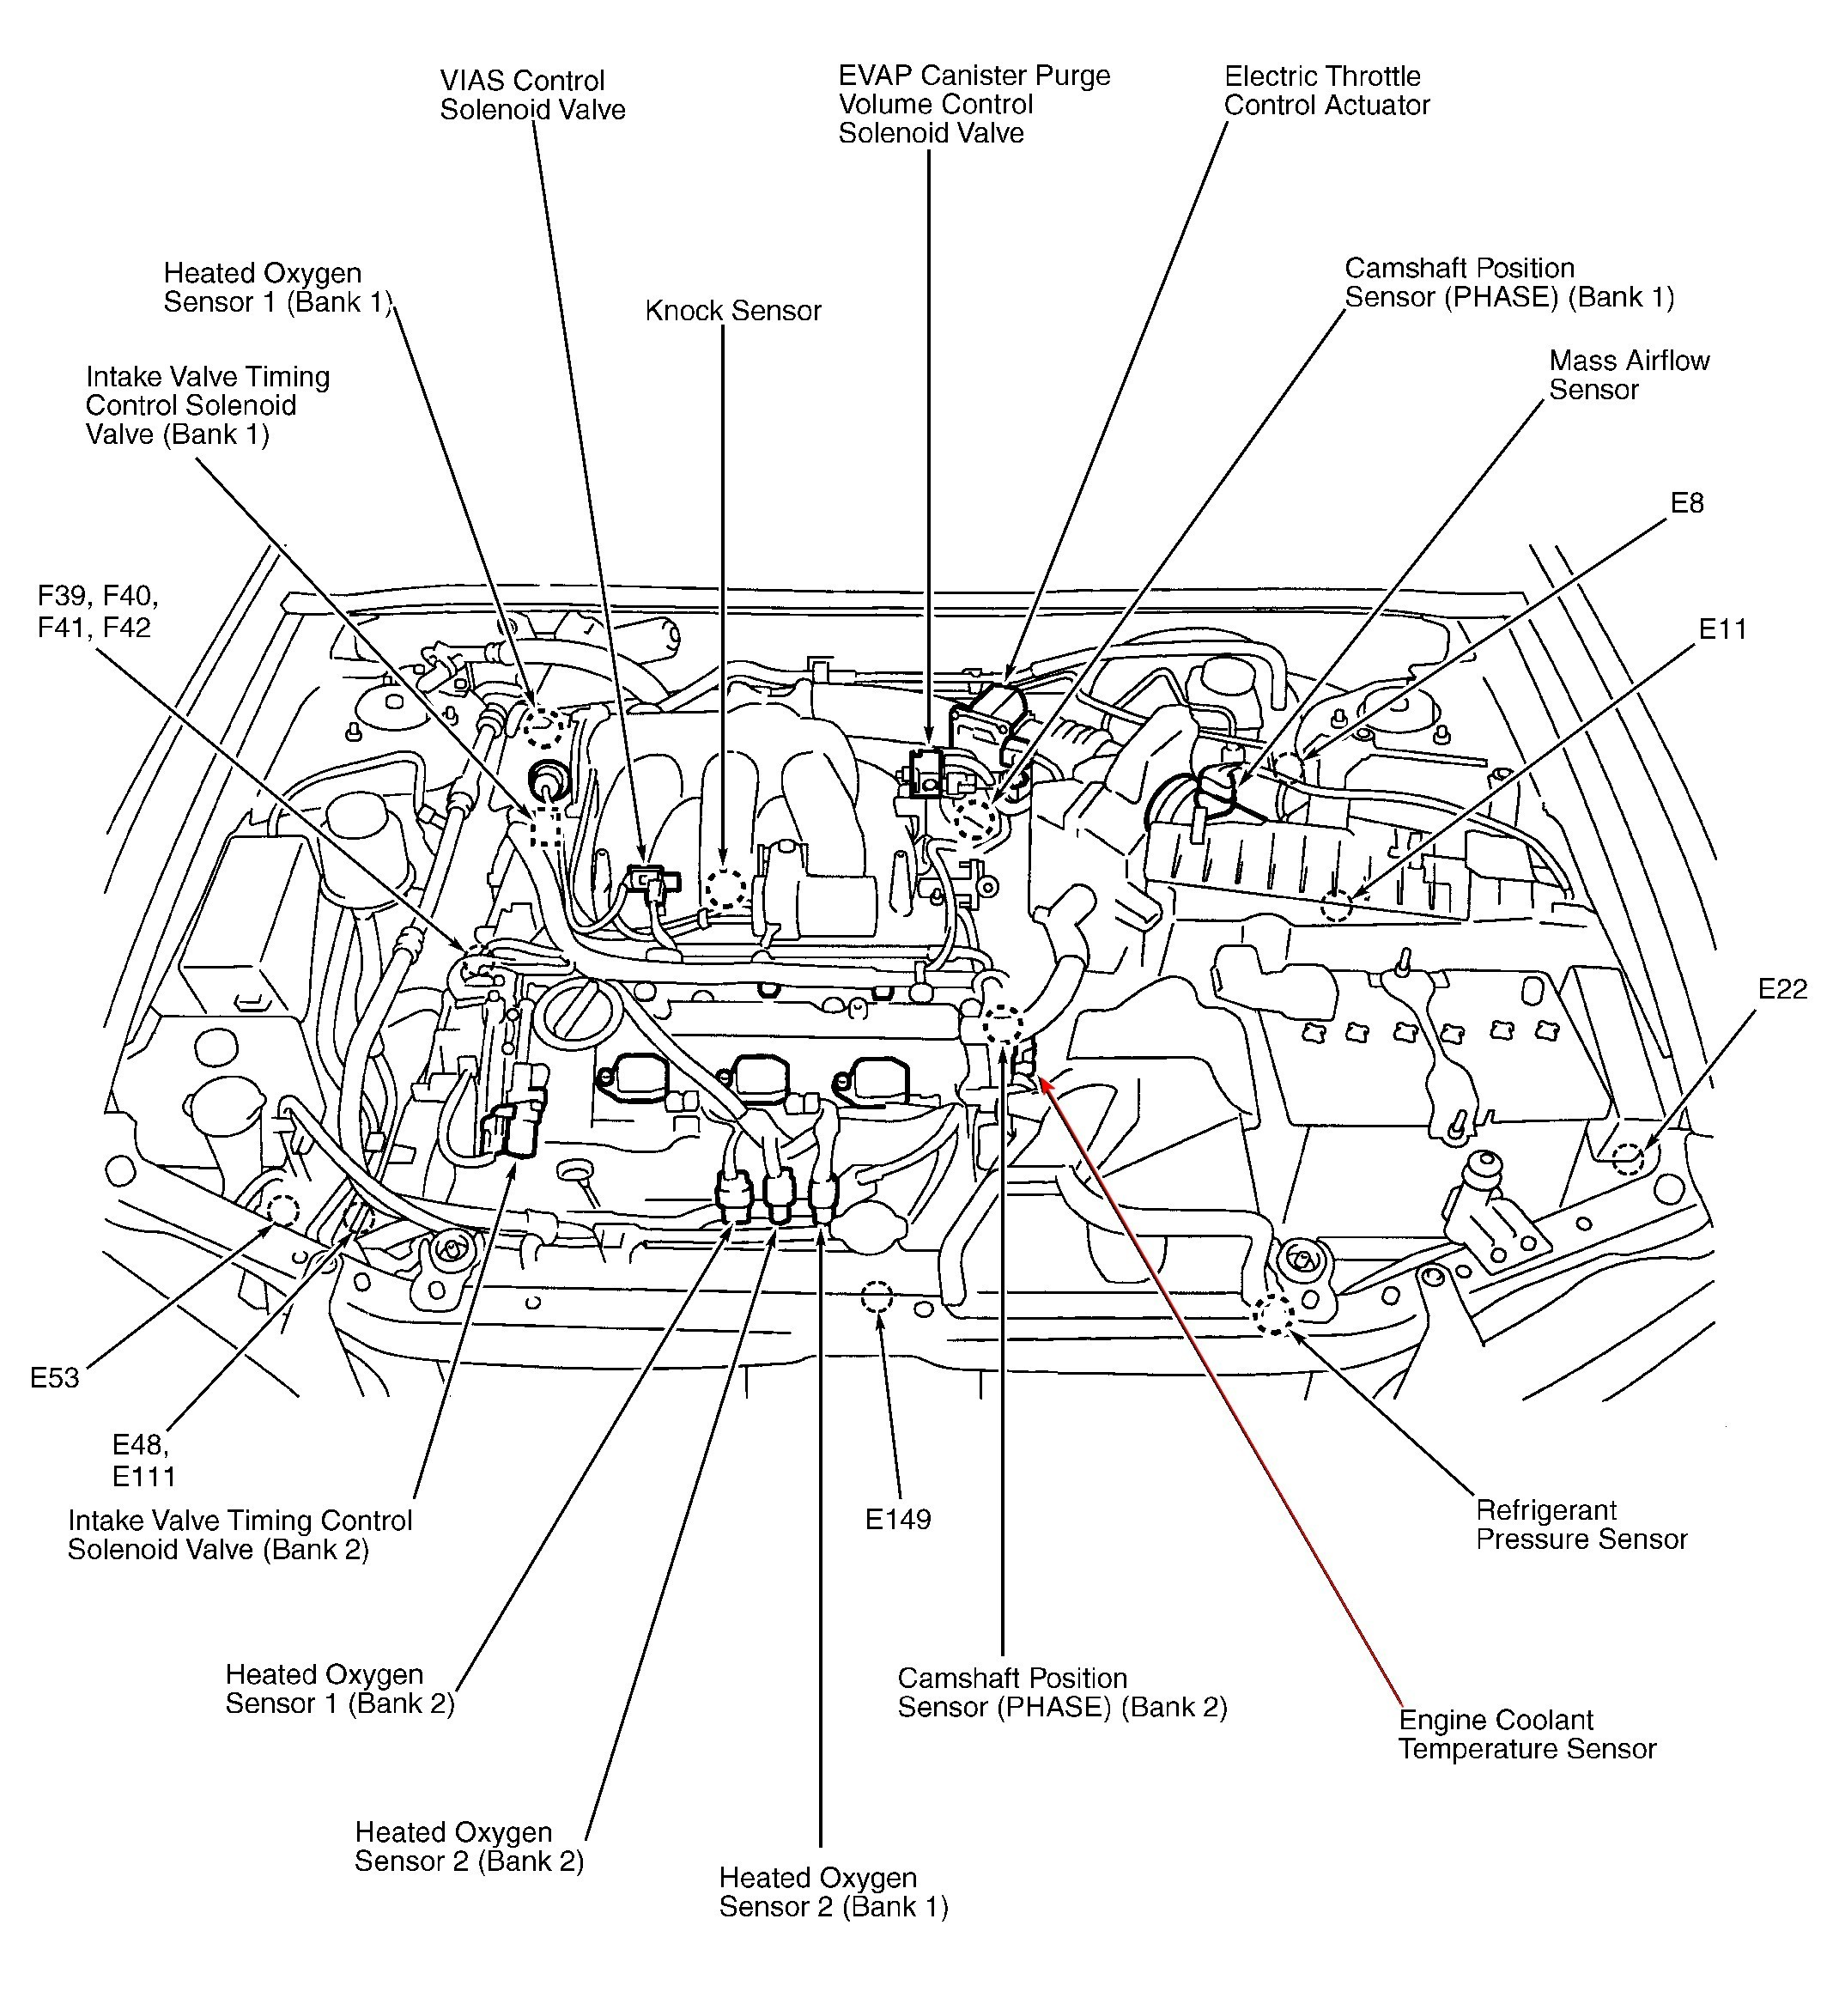 91 240sx fuse box wiring diagram 1991 nissan maxima engine diagram wiring diagram e11  1991 nissan maxima engine diagram